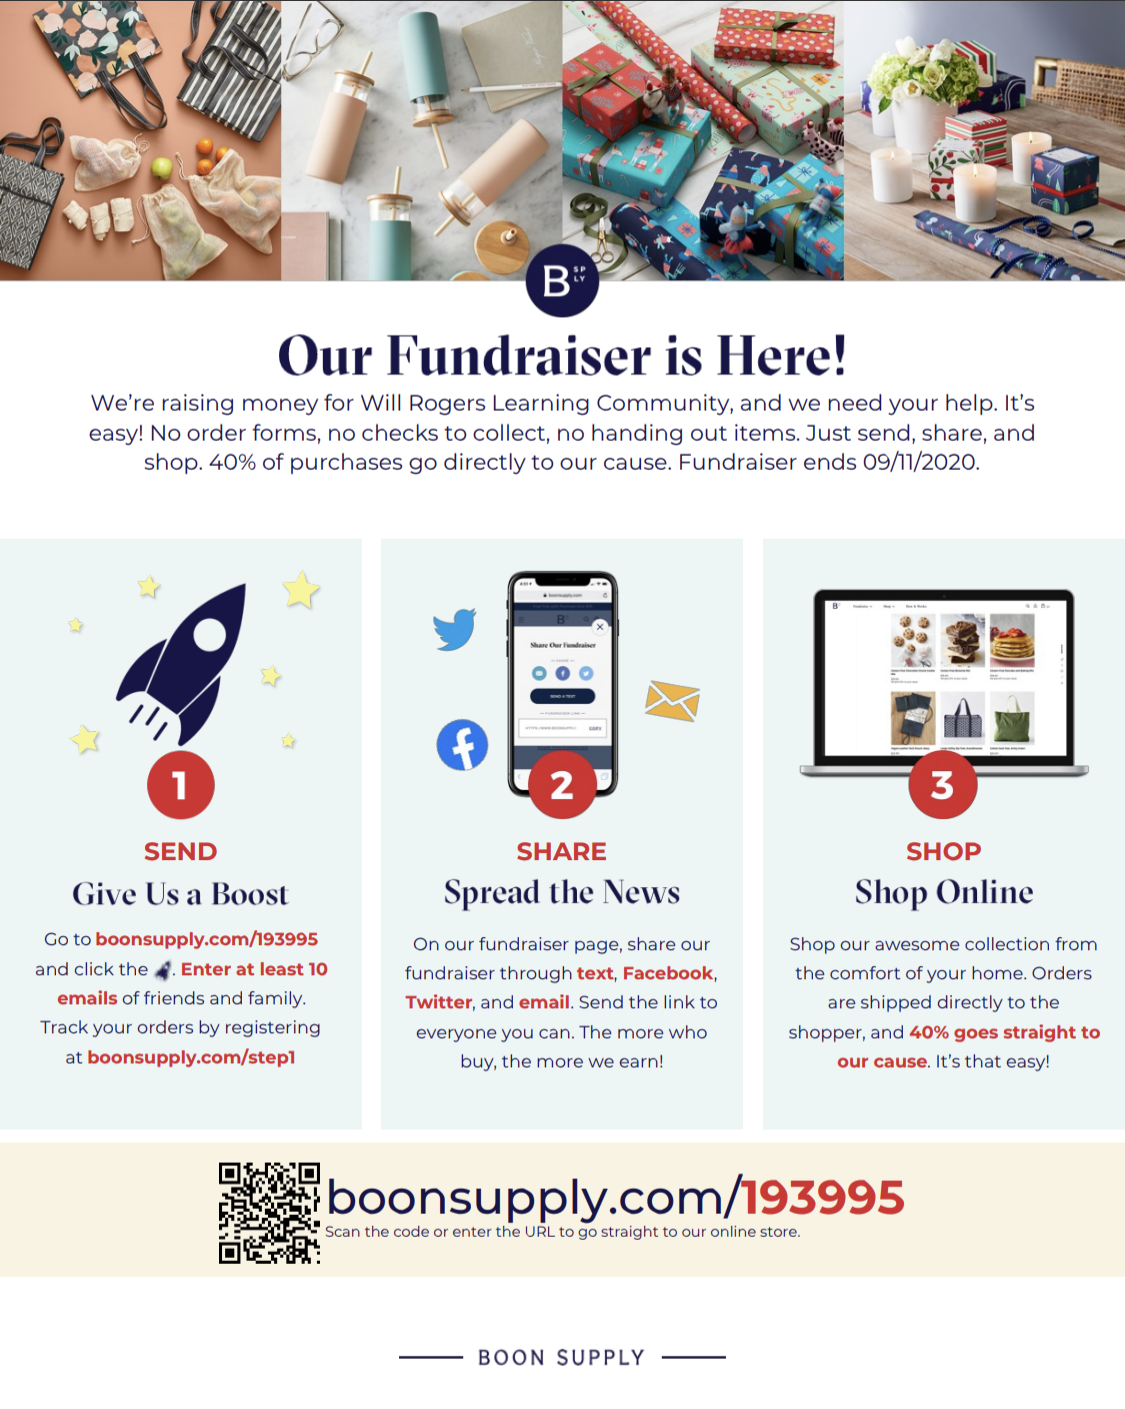 Instructions for fundraising with BoonSupply